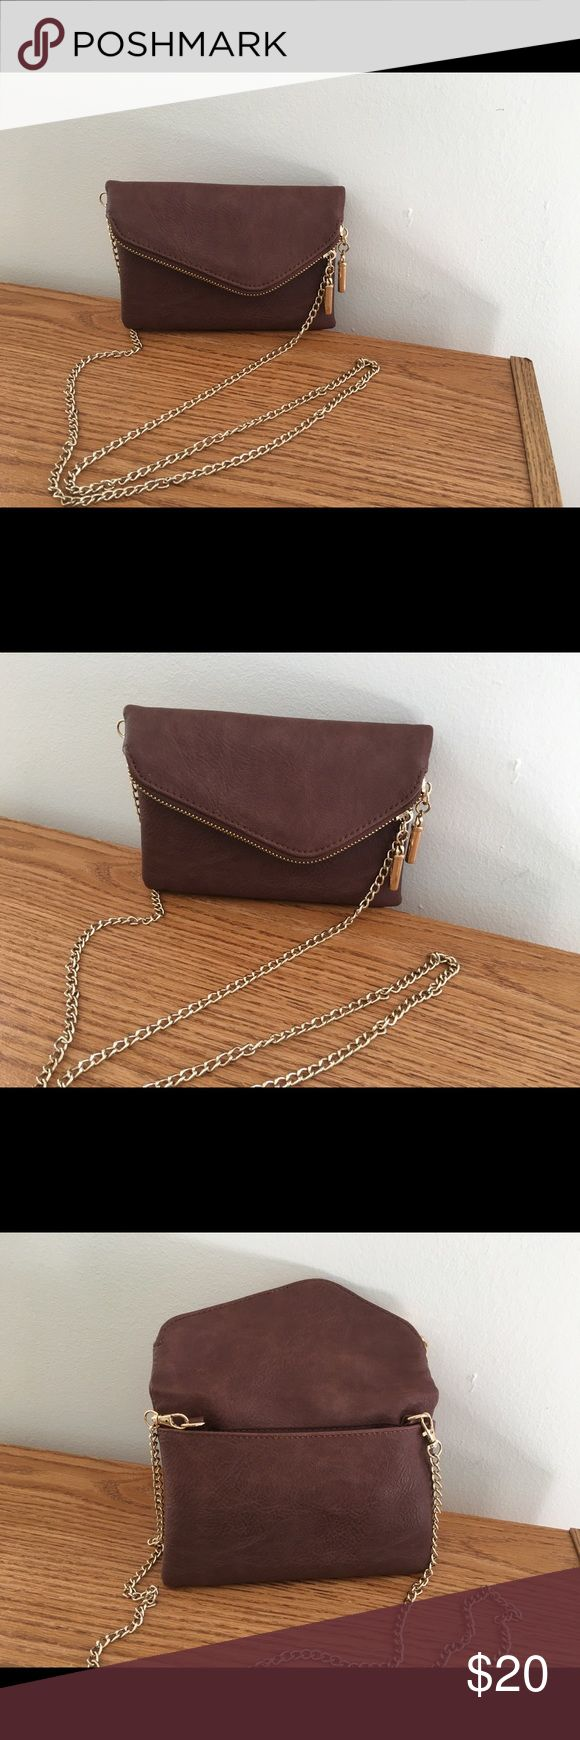 Leather evening bag Lighter brown leather evening or casual bag. This has a flap that folds down and has a double zipper on top of flap. When you fold the flap down it has a magnetic closure that holds the flap down. Has gold hardware. This is. Very cute bag.  The strap is a gold chain. Bags Cosmetic Bags & Cases